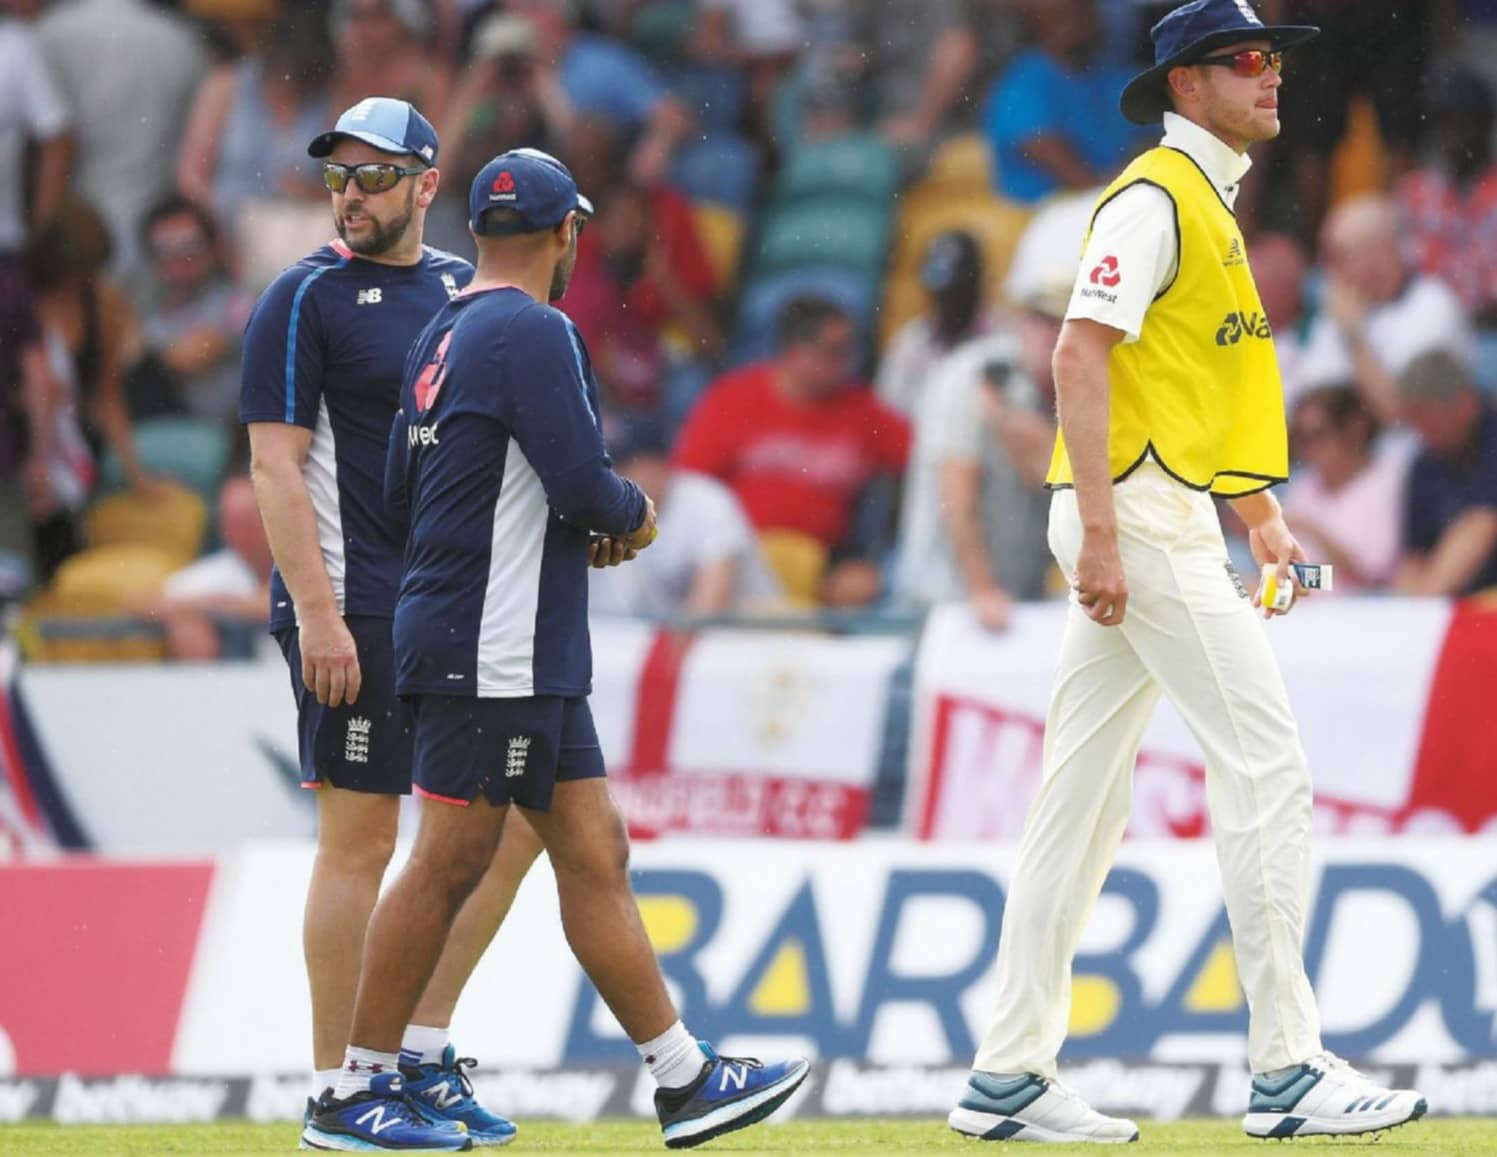 Will Broad Lose His Way After Taking Short-cut?